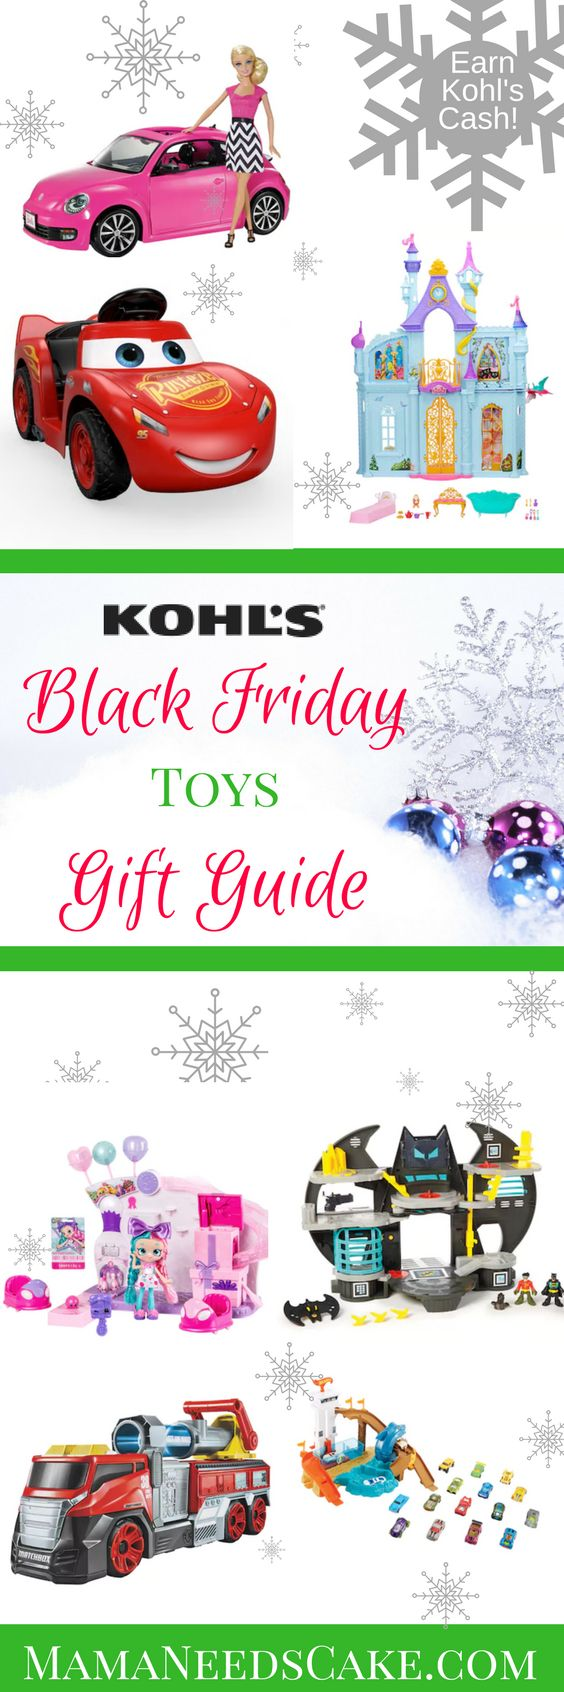 Kohl's Black Friday Toys Gift Guide - Every year I do the majority of my toy shopping during Kohl's Black Friday event. They always have a great selection